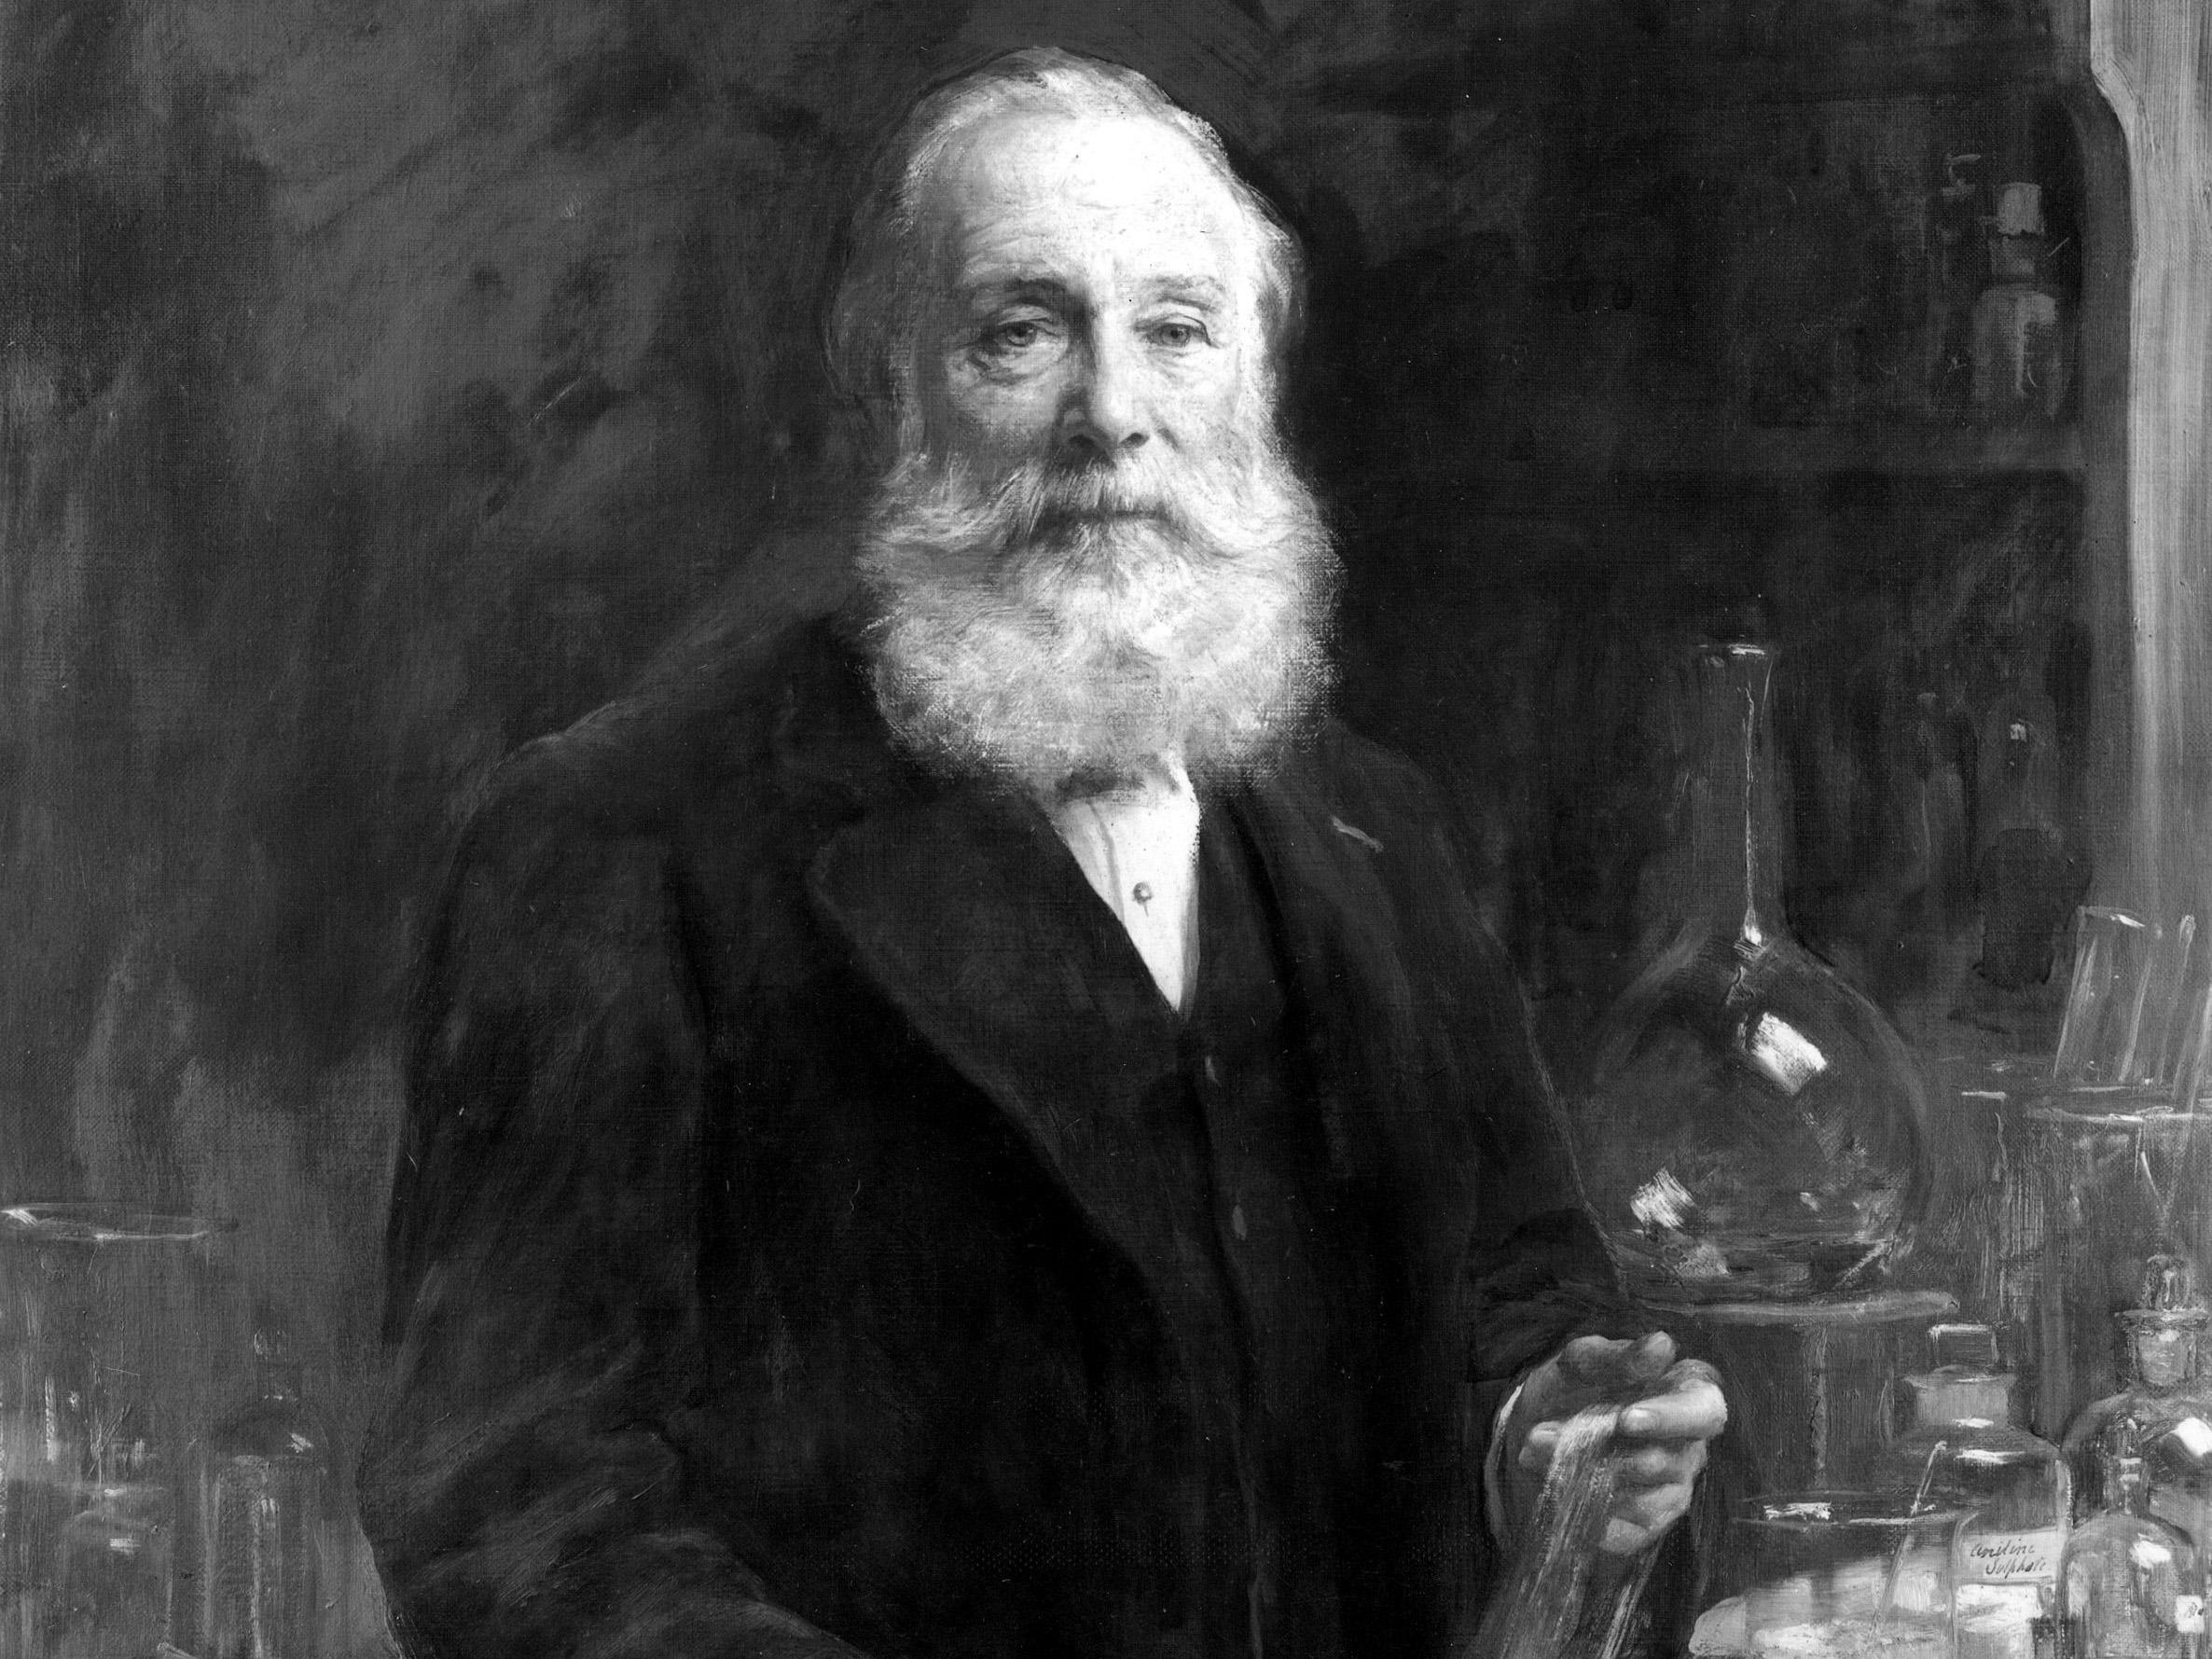 Sir William Henry Perkin Who Was The Victorian Chemist Who Made It Possible For Prince To Wear Purple The Independent